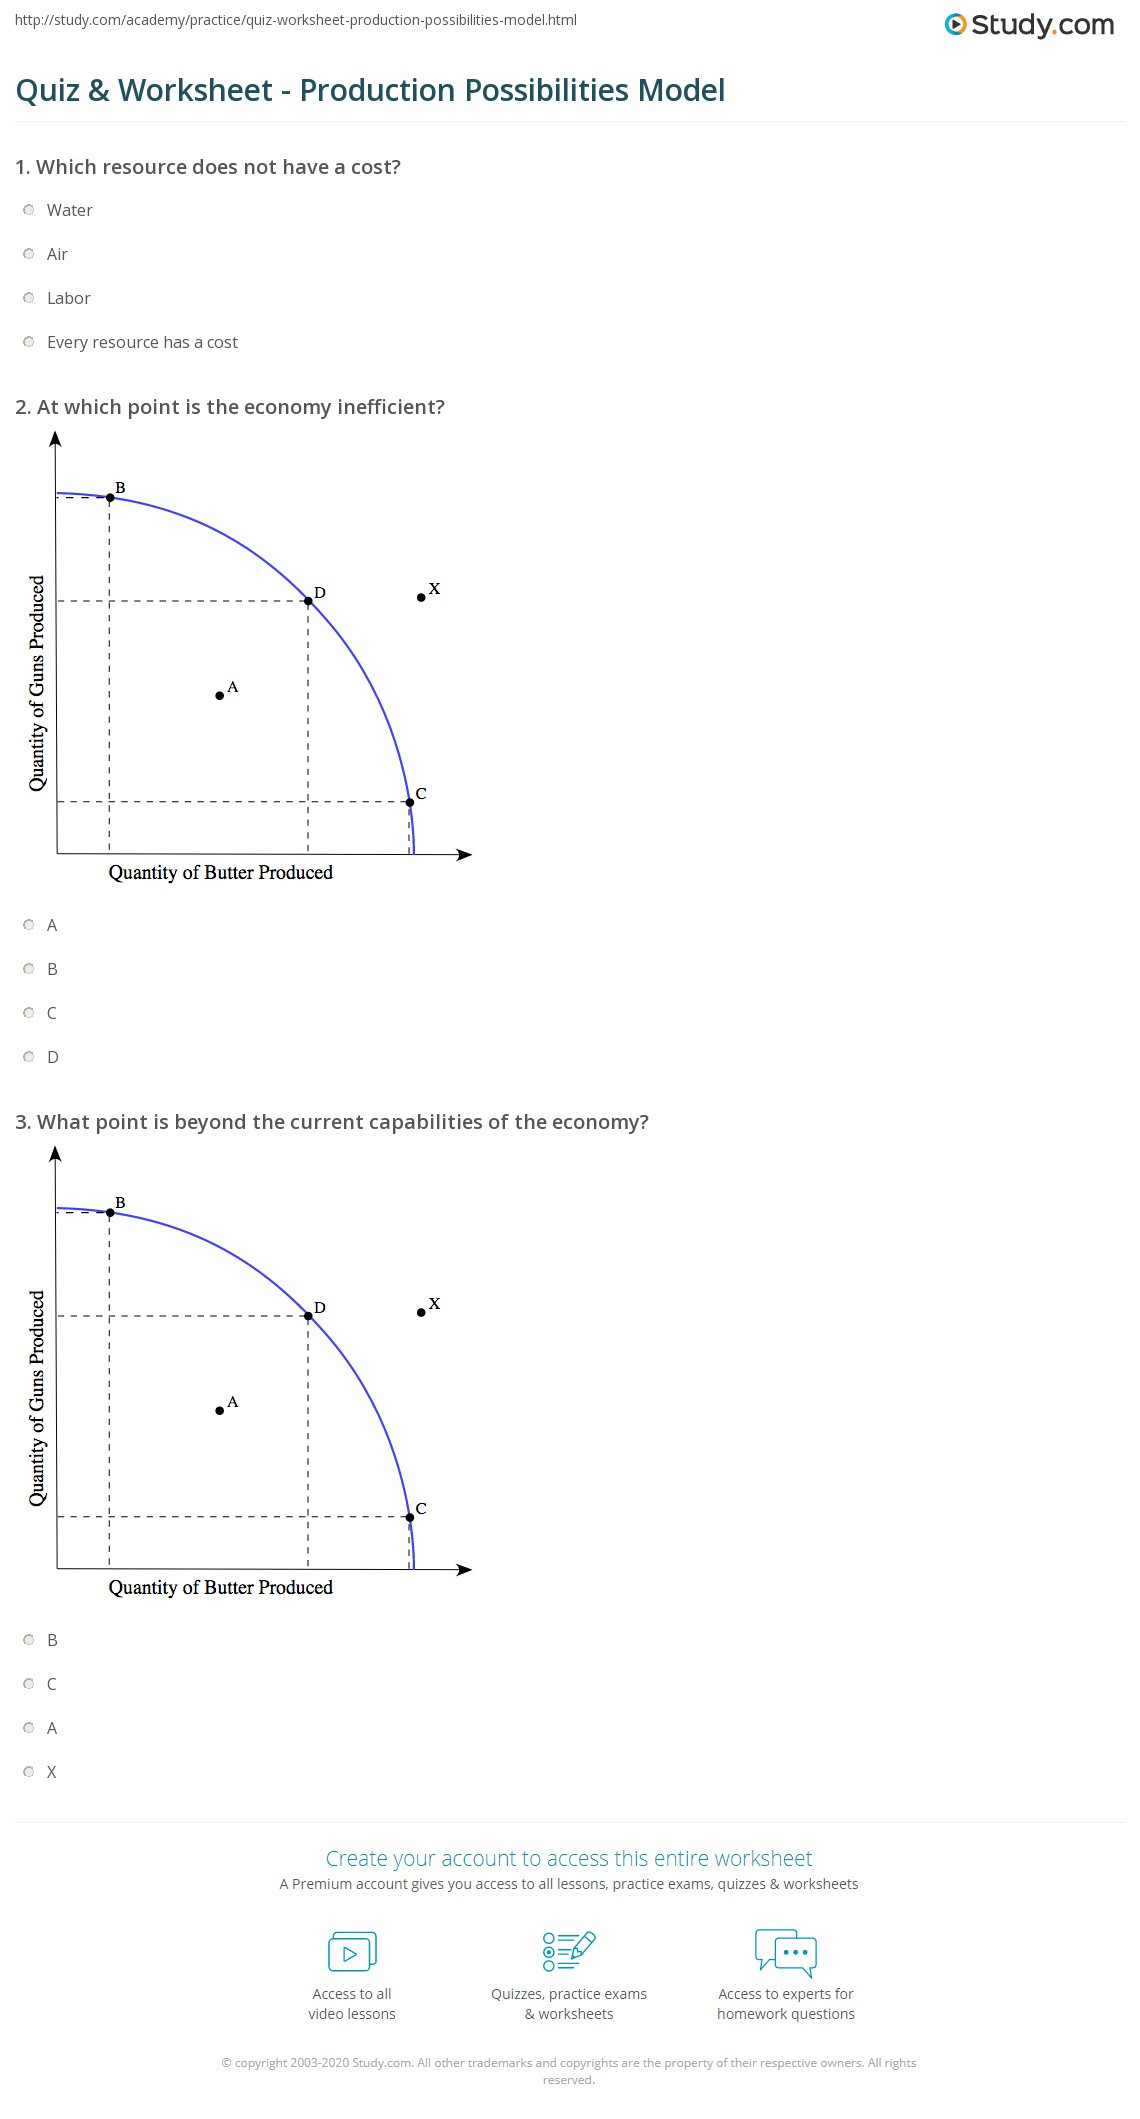 Production Possibilities Curve Worksheet Answers Quiz & Worksheet Production Possibilities Model